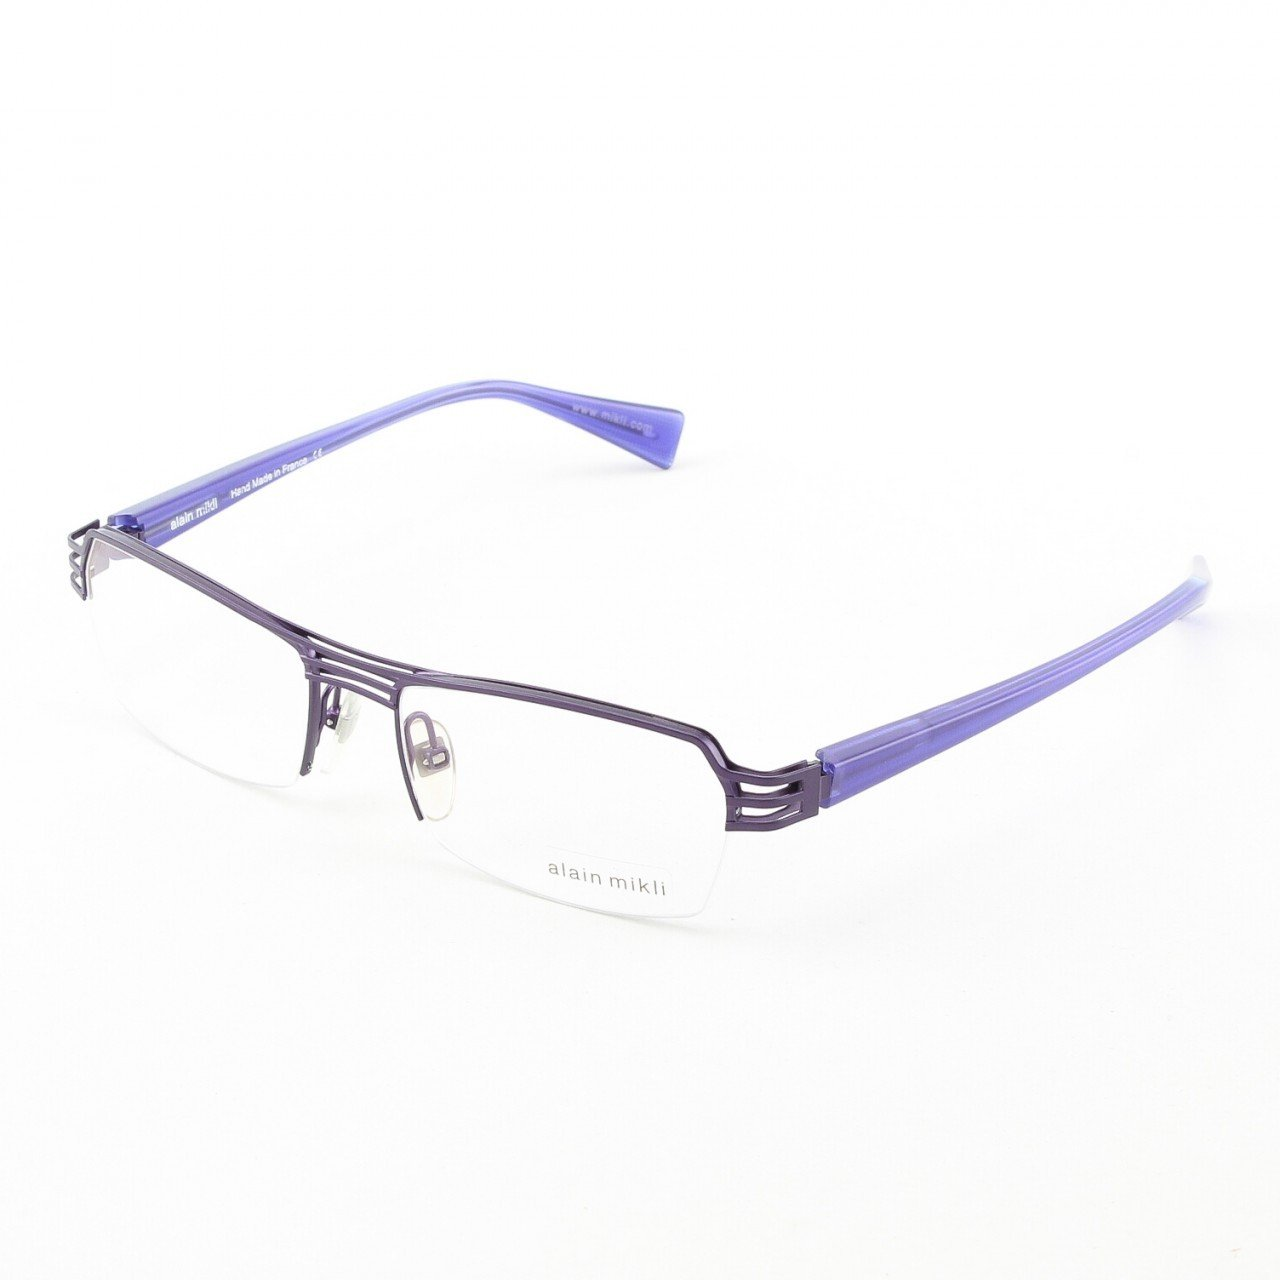 Alain Mikli Eyeglasses AL1107 Col. M00V Purple Metal with Translucent Purple Temples